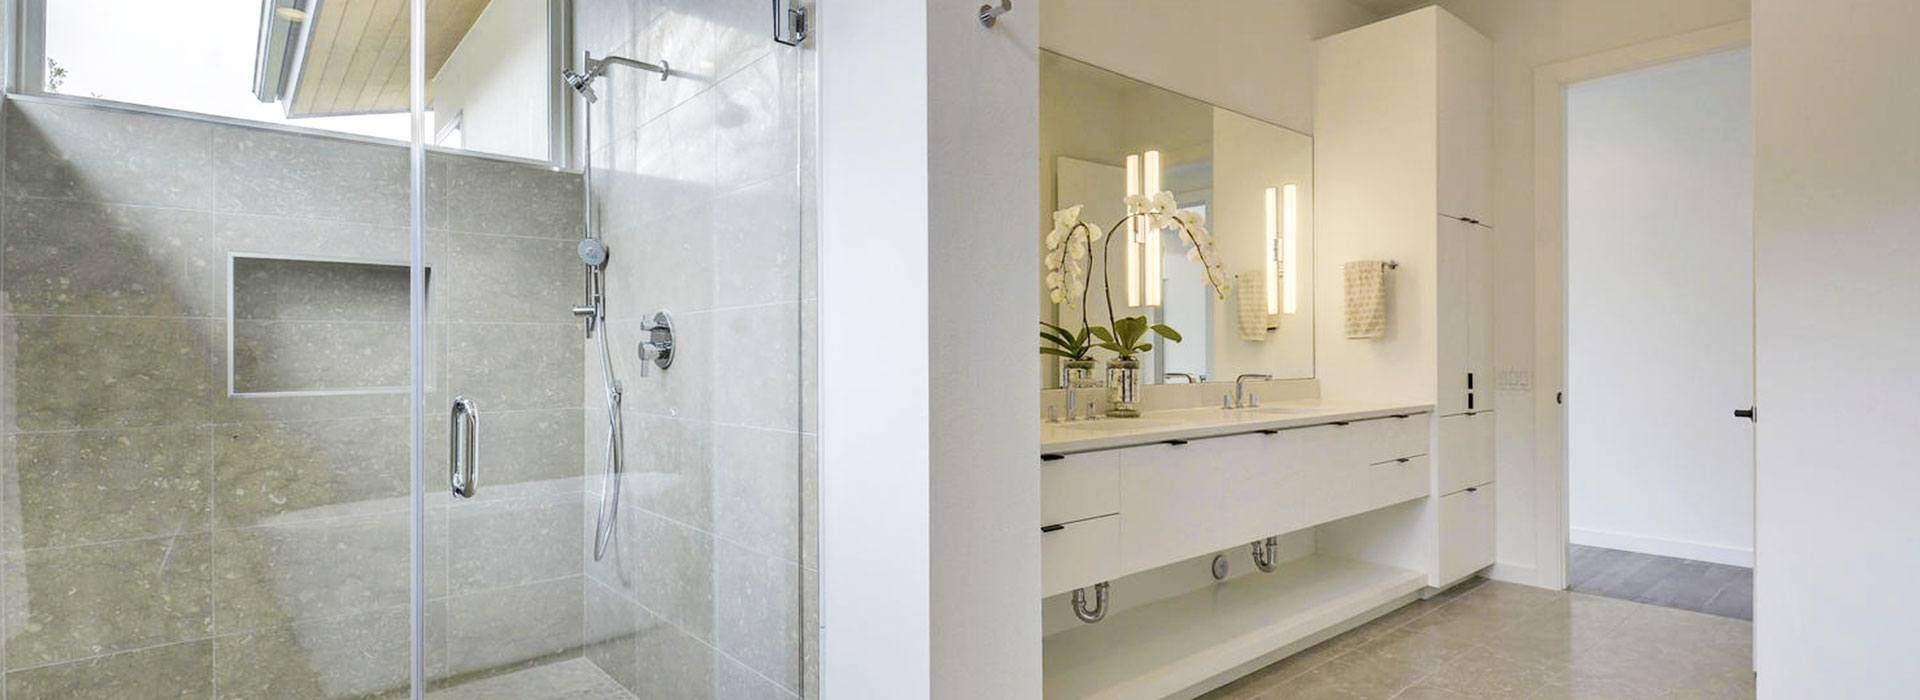 Frameless Showers | Anchor-Ventana Glass | Austin, Texas Glass Company